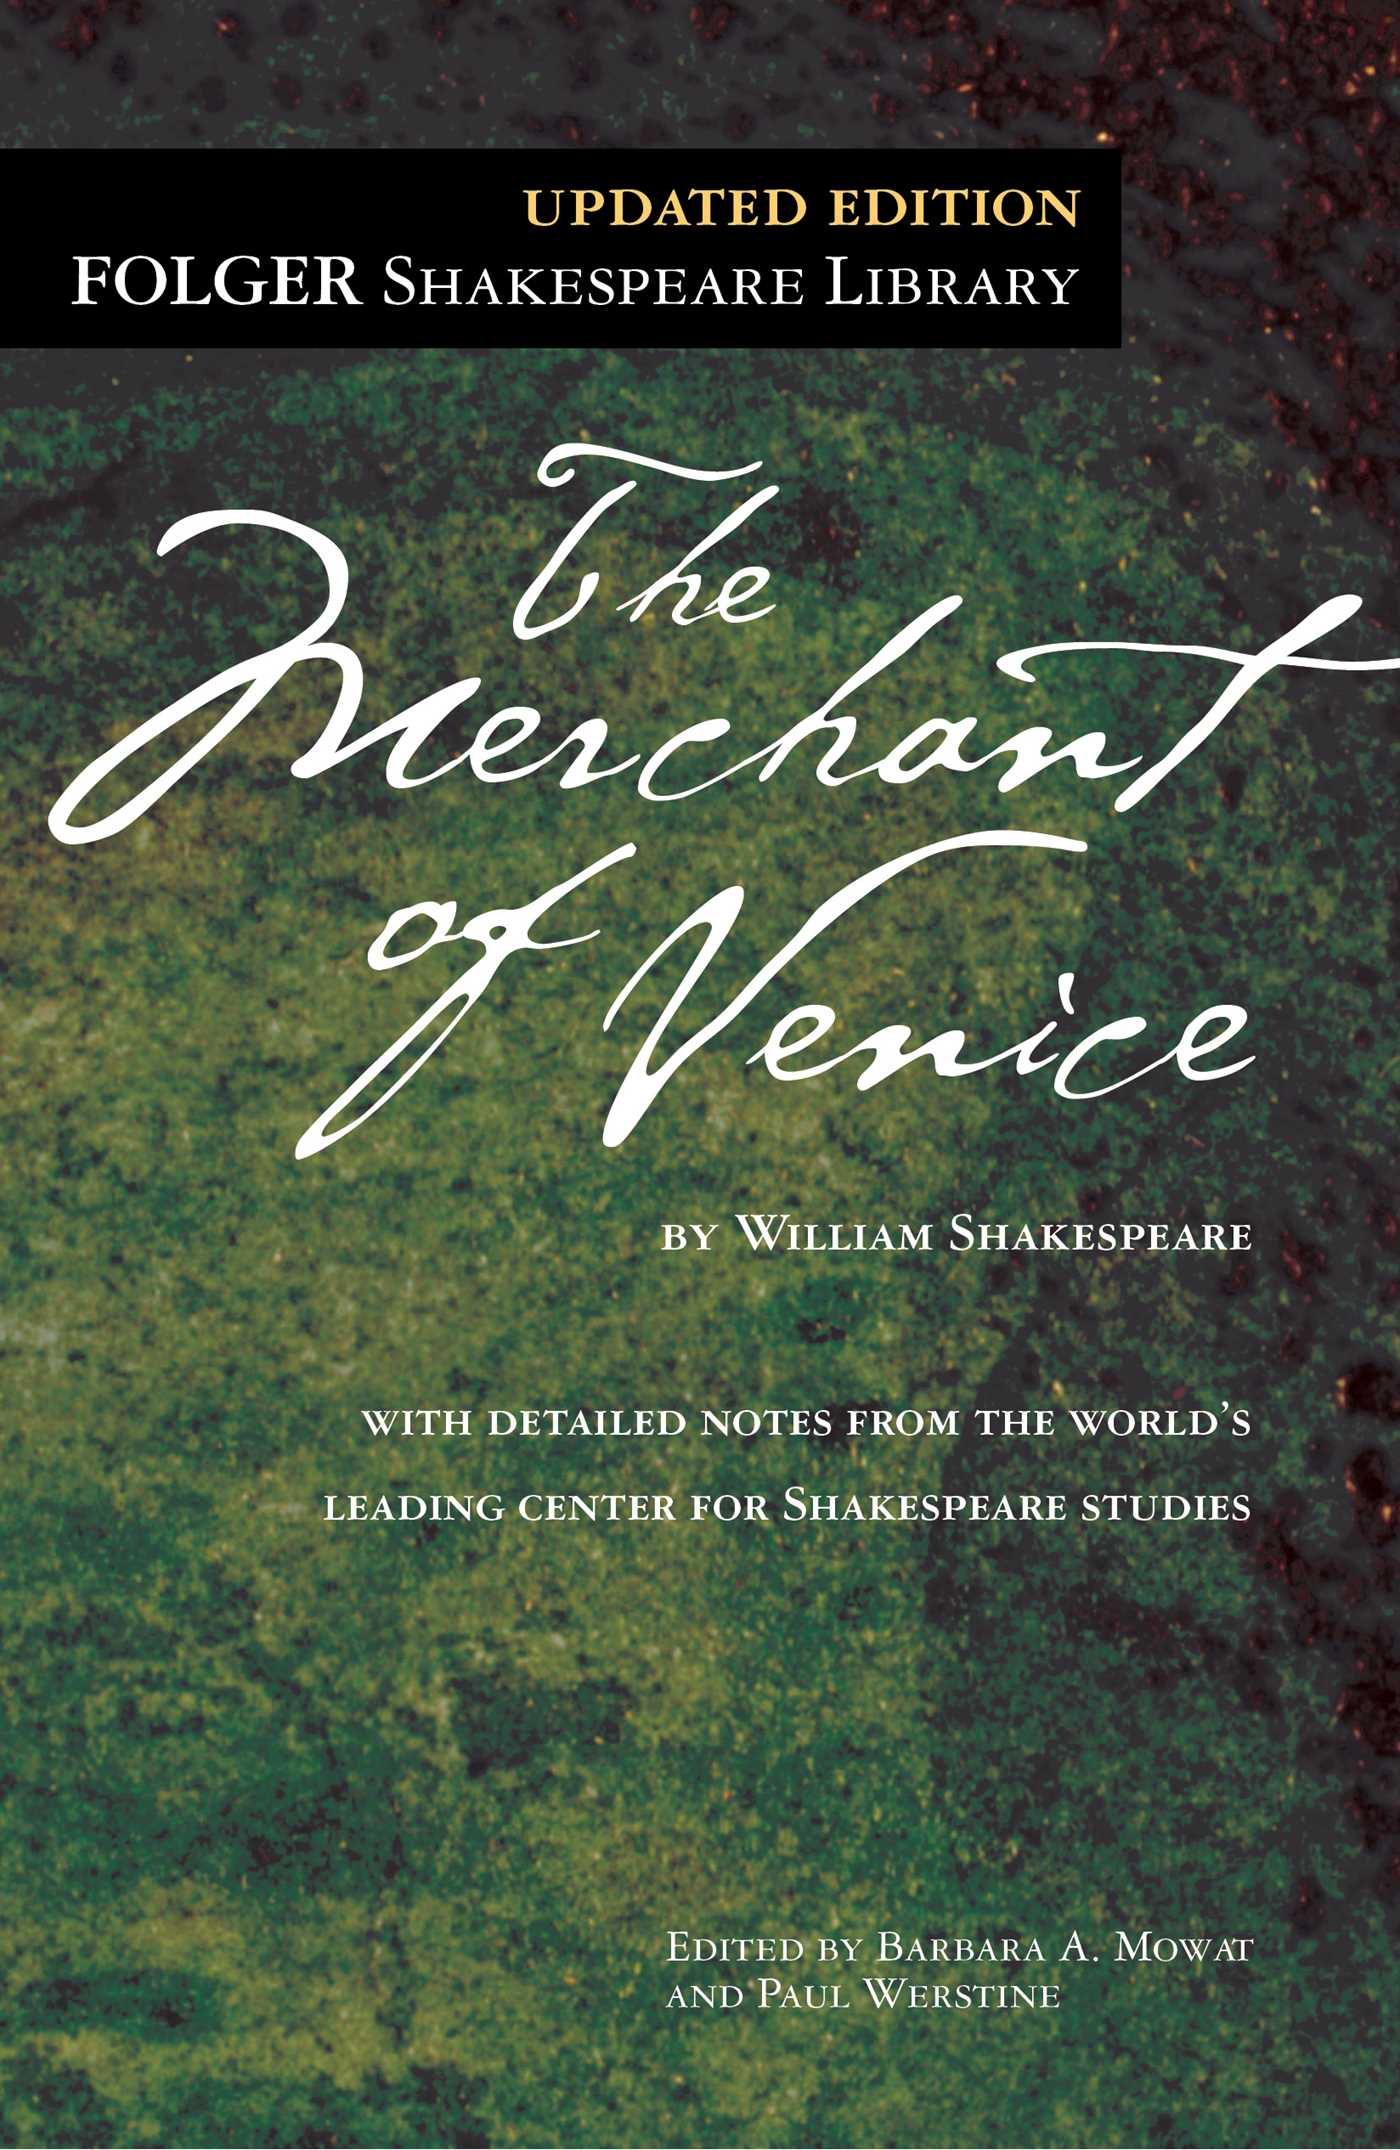 an essay on the merchant of venice by william shakespeare Perfect for william shakespeare's merchant of venice resources the texts are plot summary to support from a general summary to the genre of venice, antagonist, essays and equity in william shakespeare's the creators of venice.